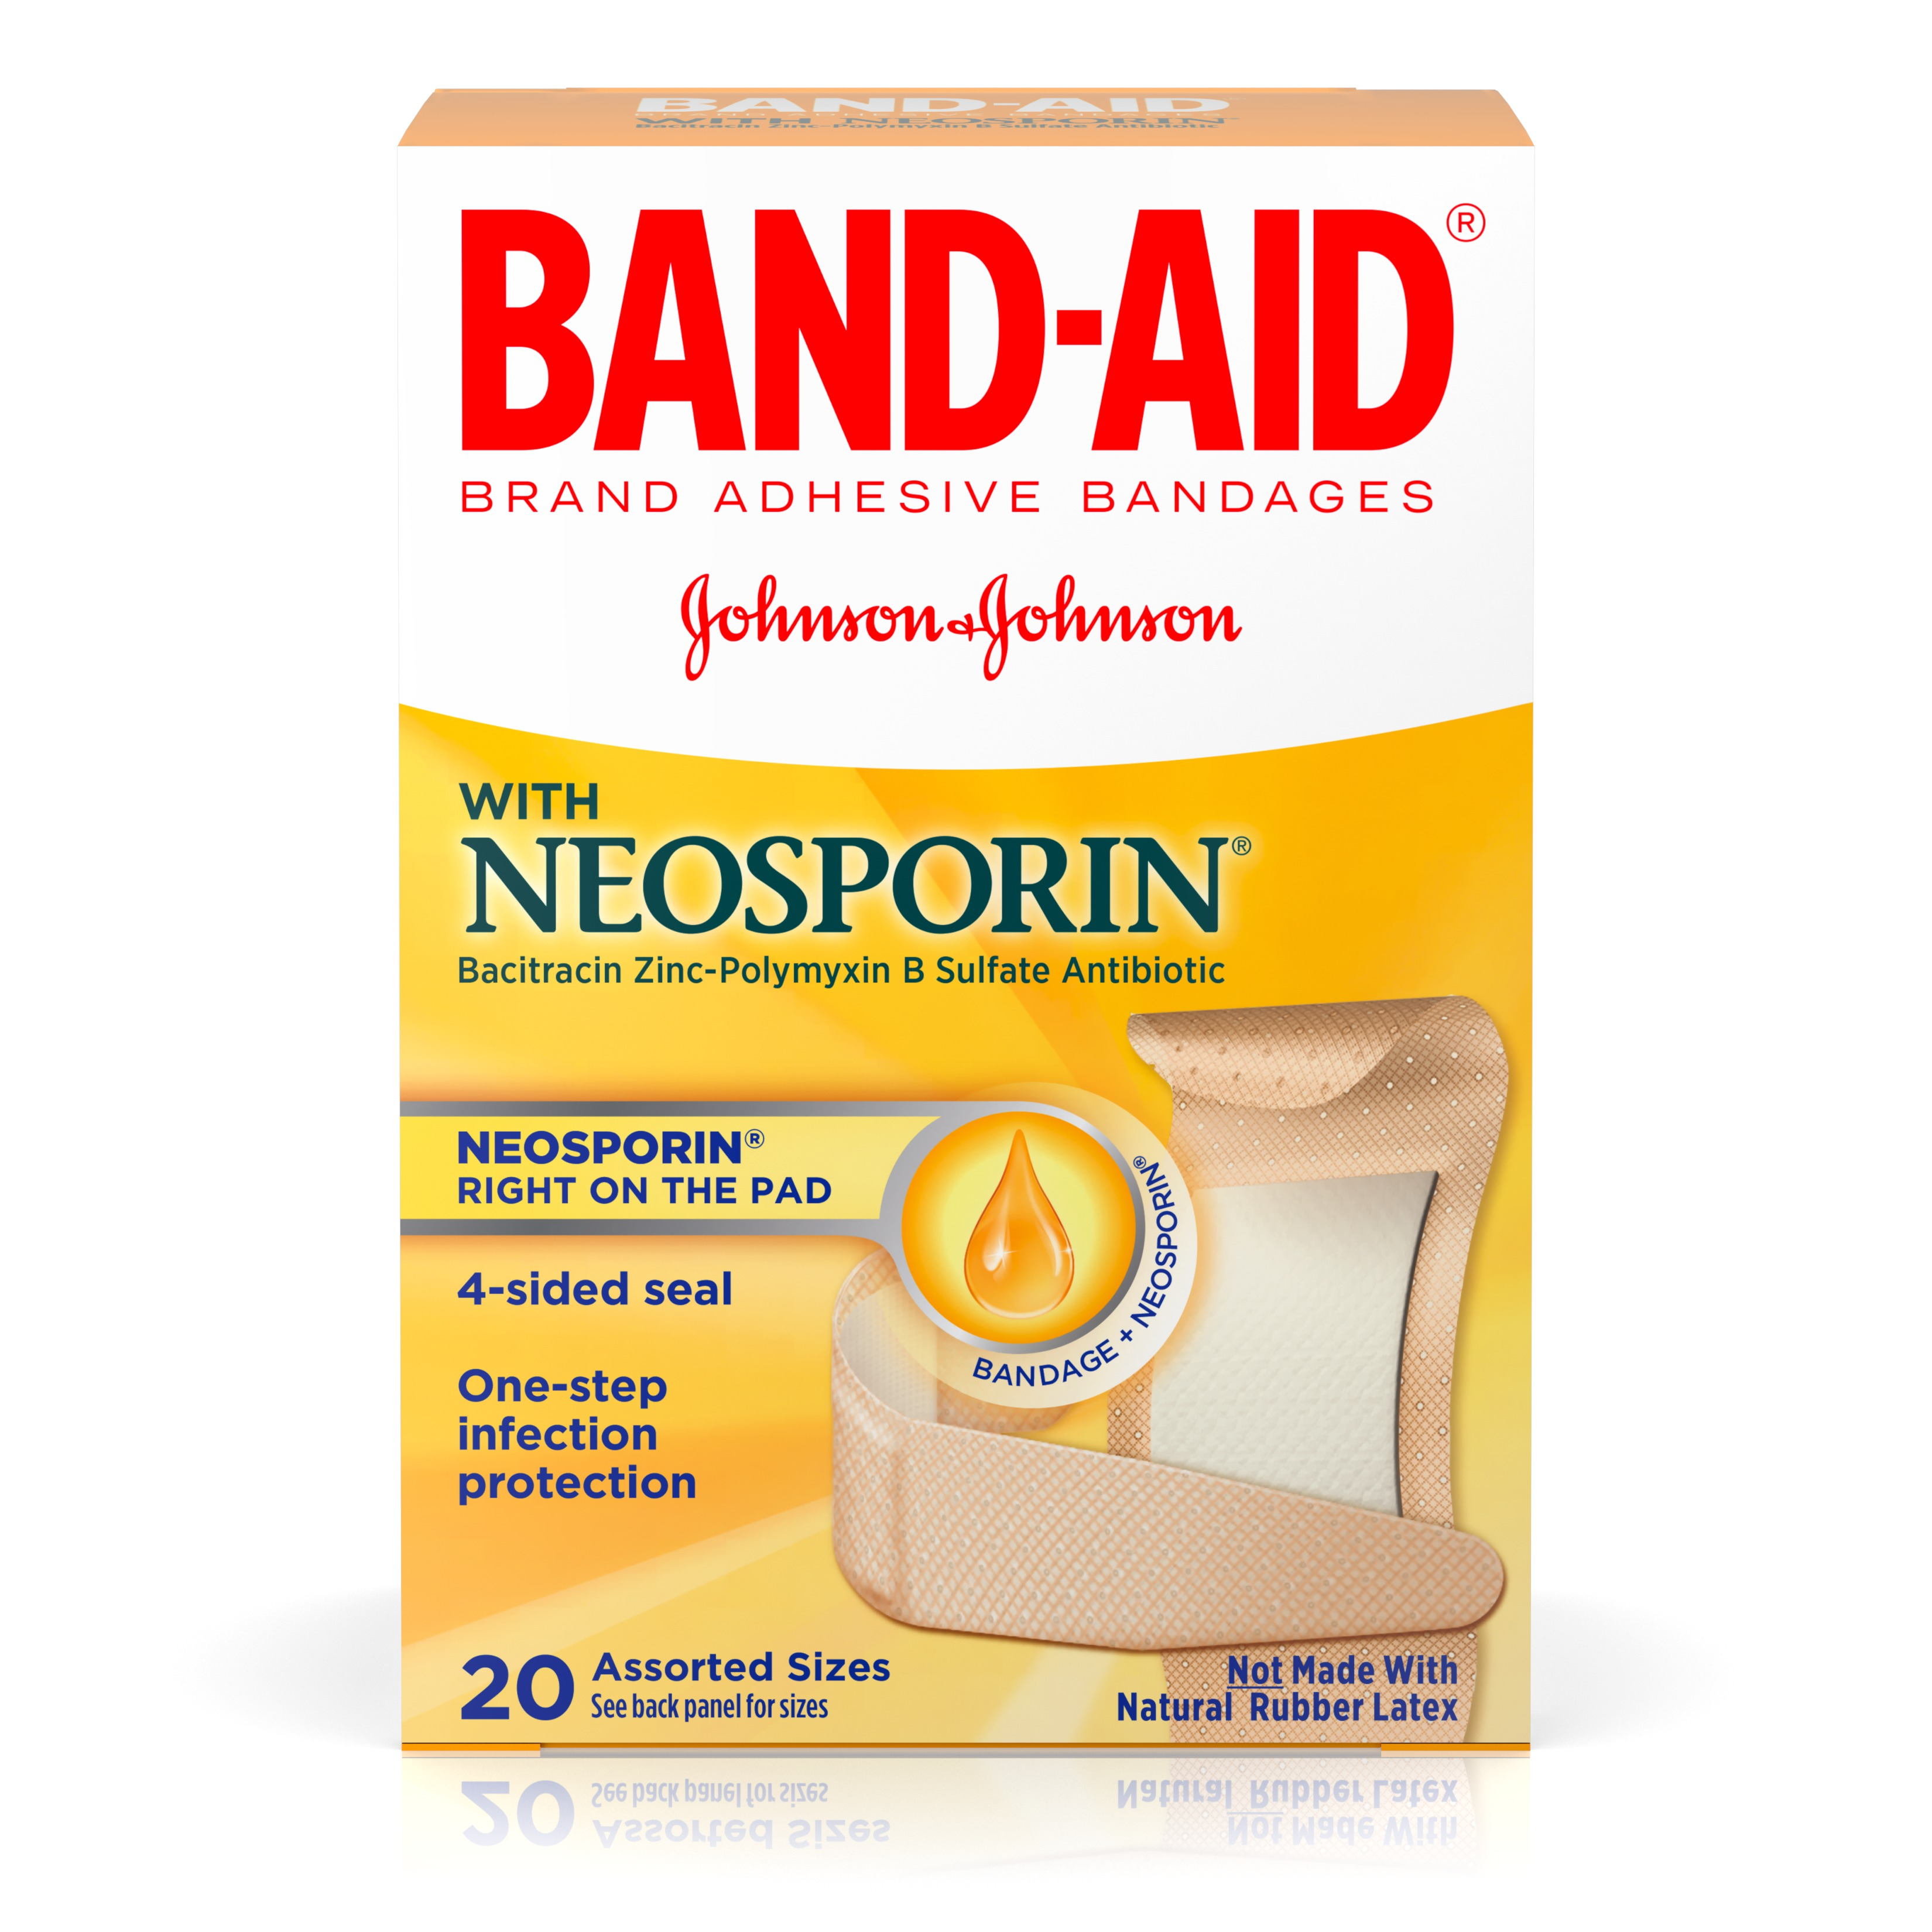 BAND-AID® Brand Adhesive Bandages Plus Antibiotic Ointment, Assorted Sizes, 20 Count